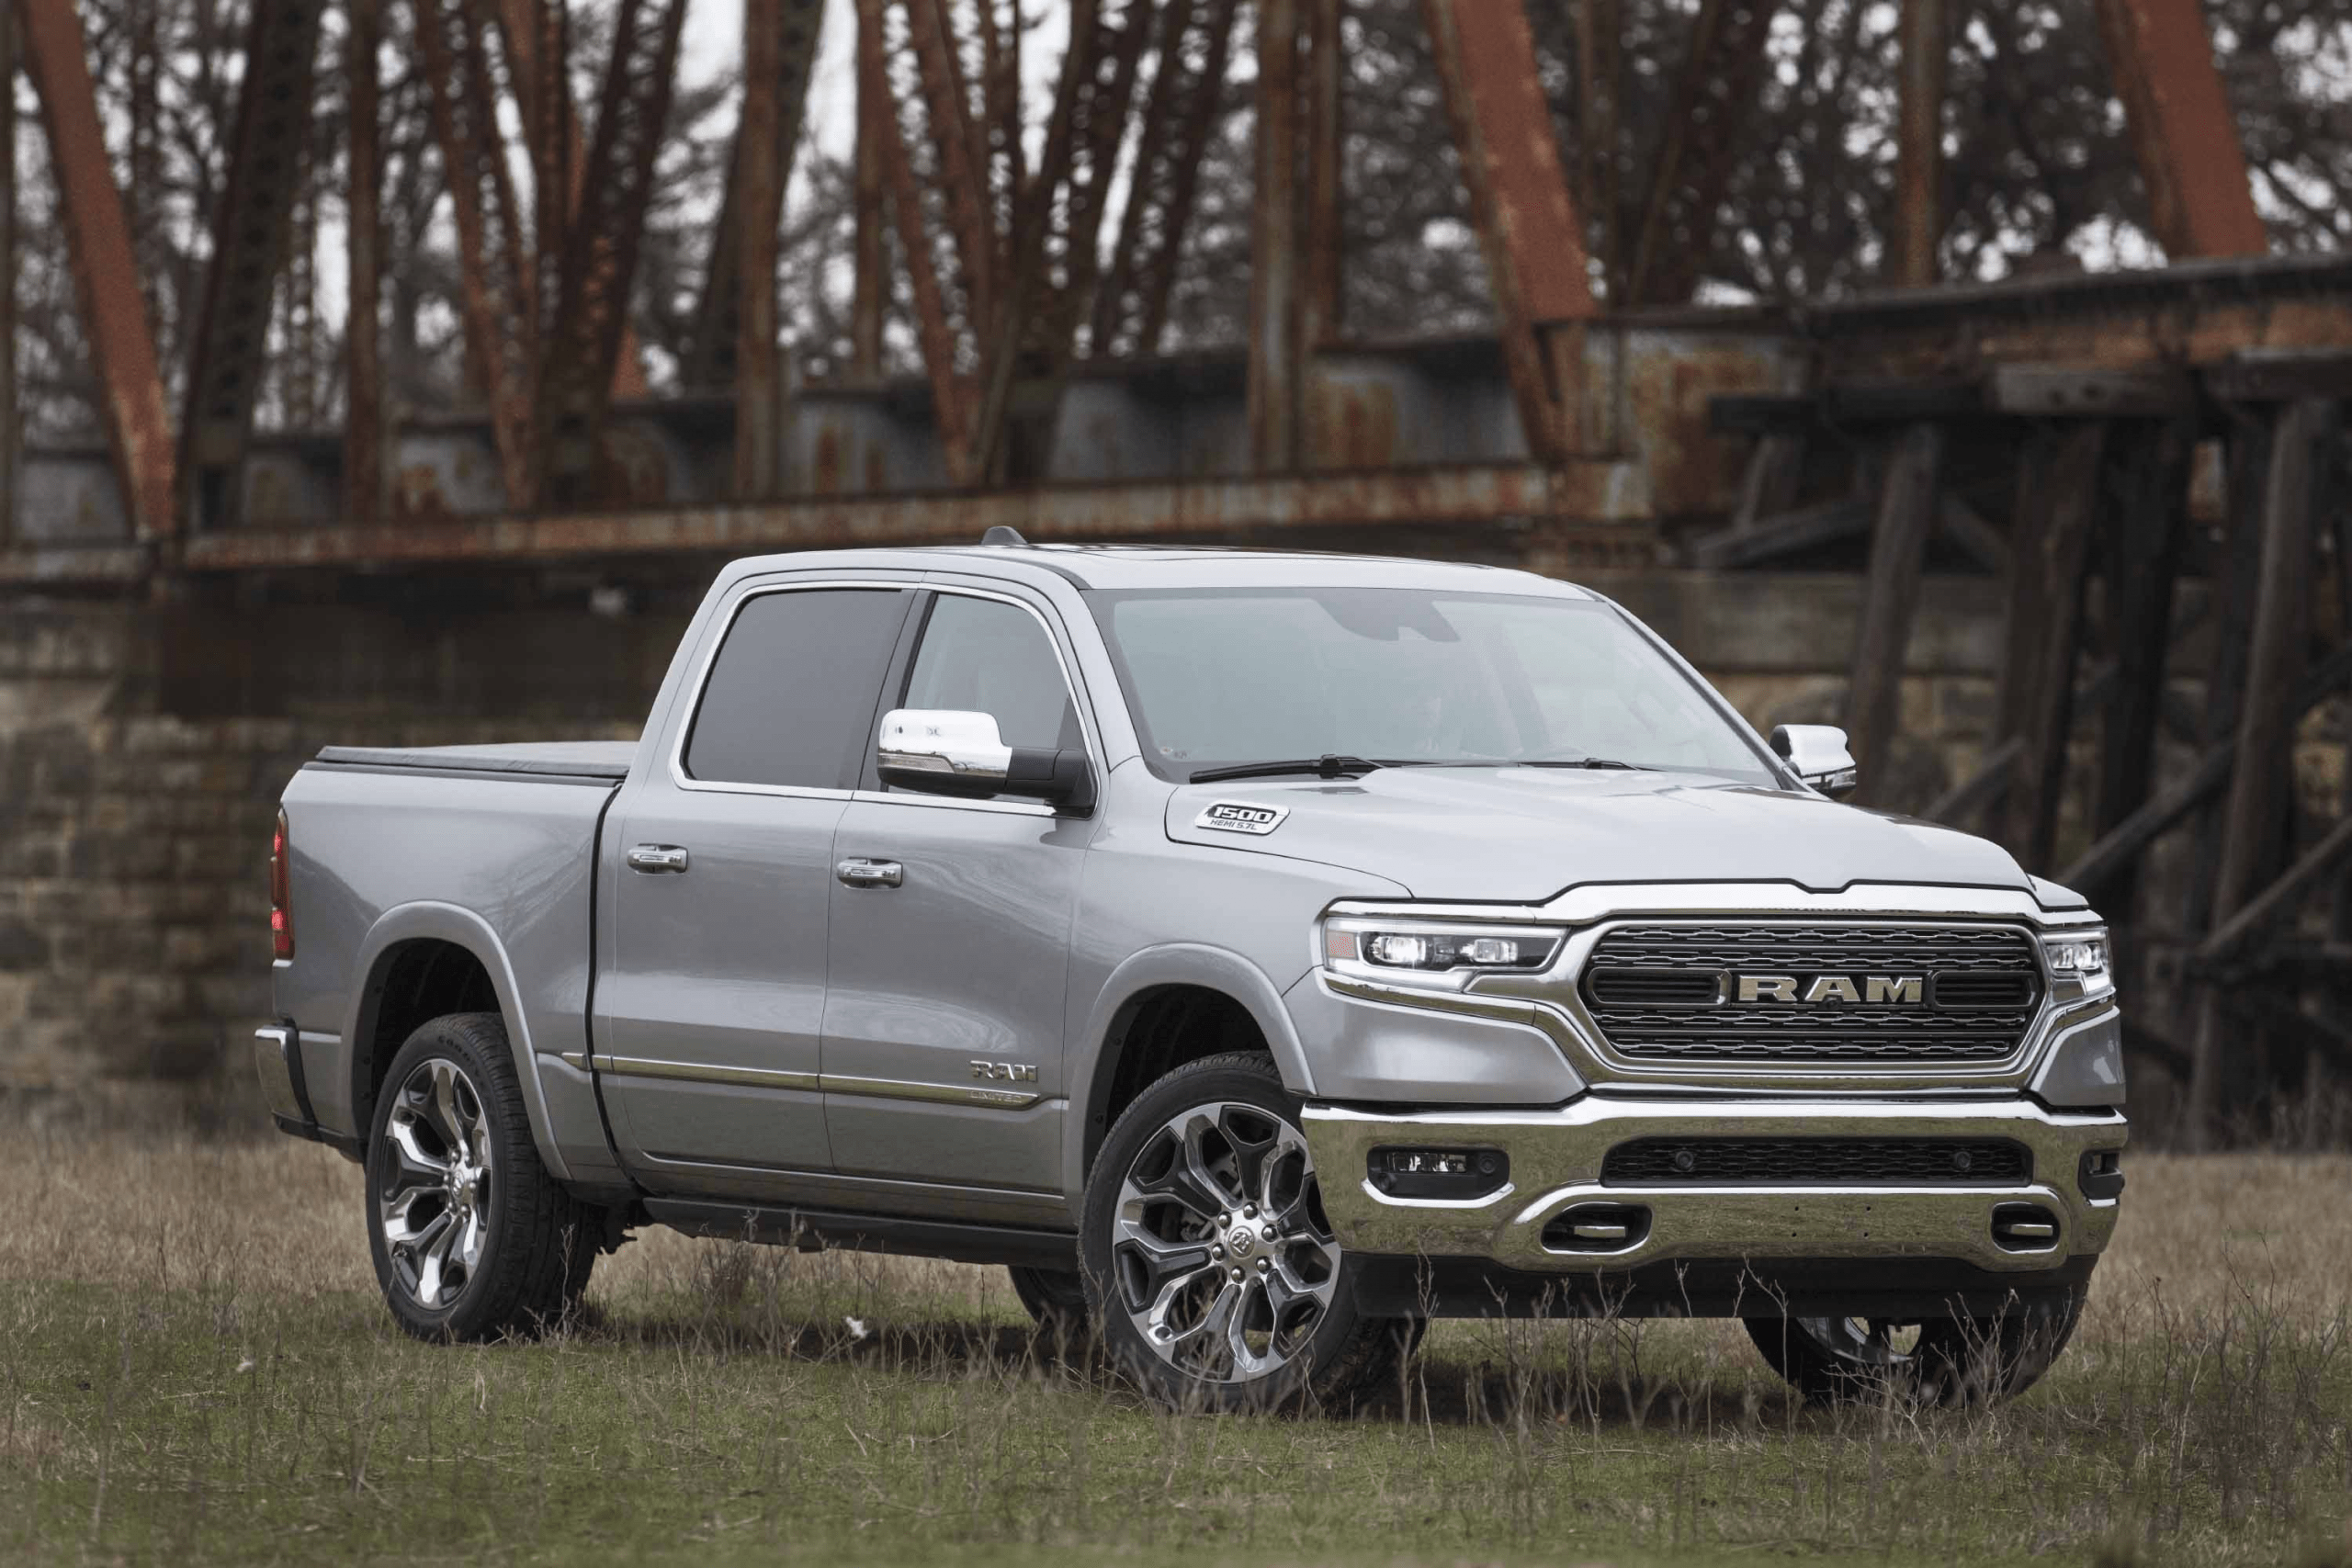 2021 Dodge Power Wagon Redesign And Review In 2020 Dodge Trucks Ram 1500 Diesel Chrysler Dodge Jeep